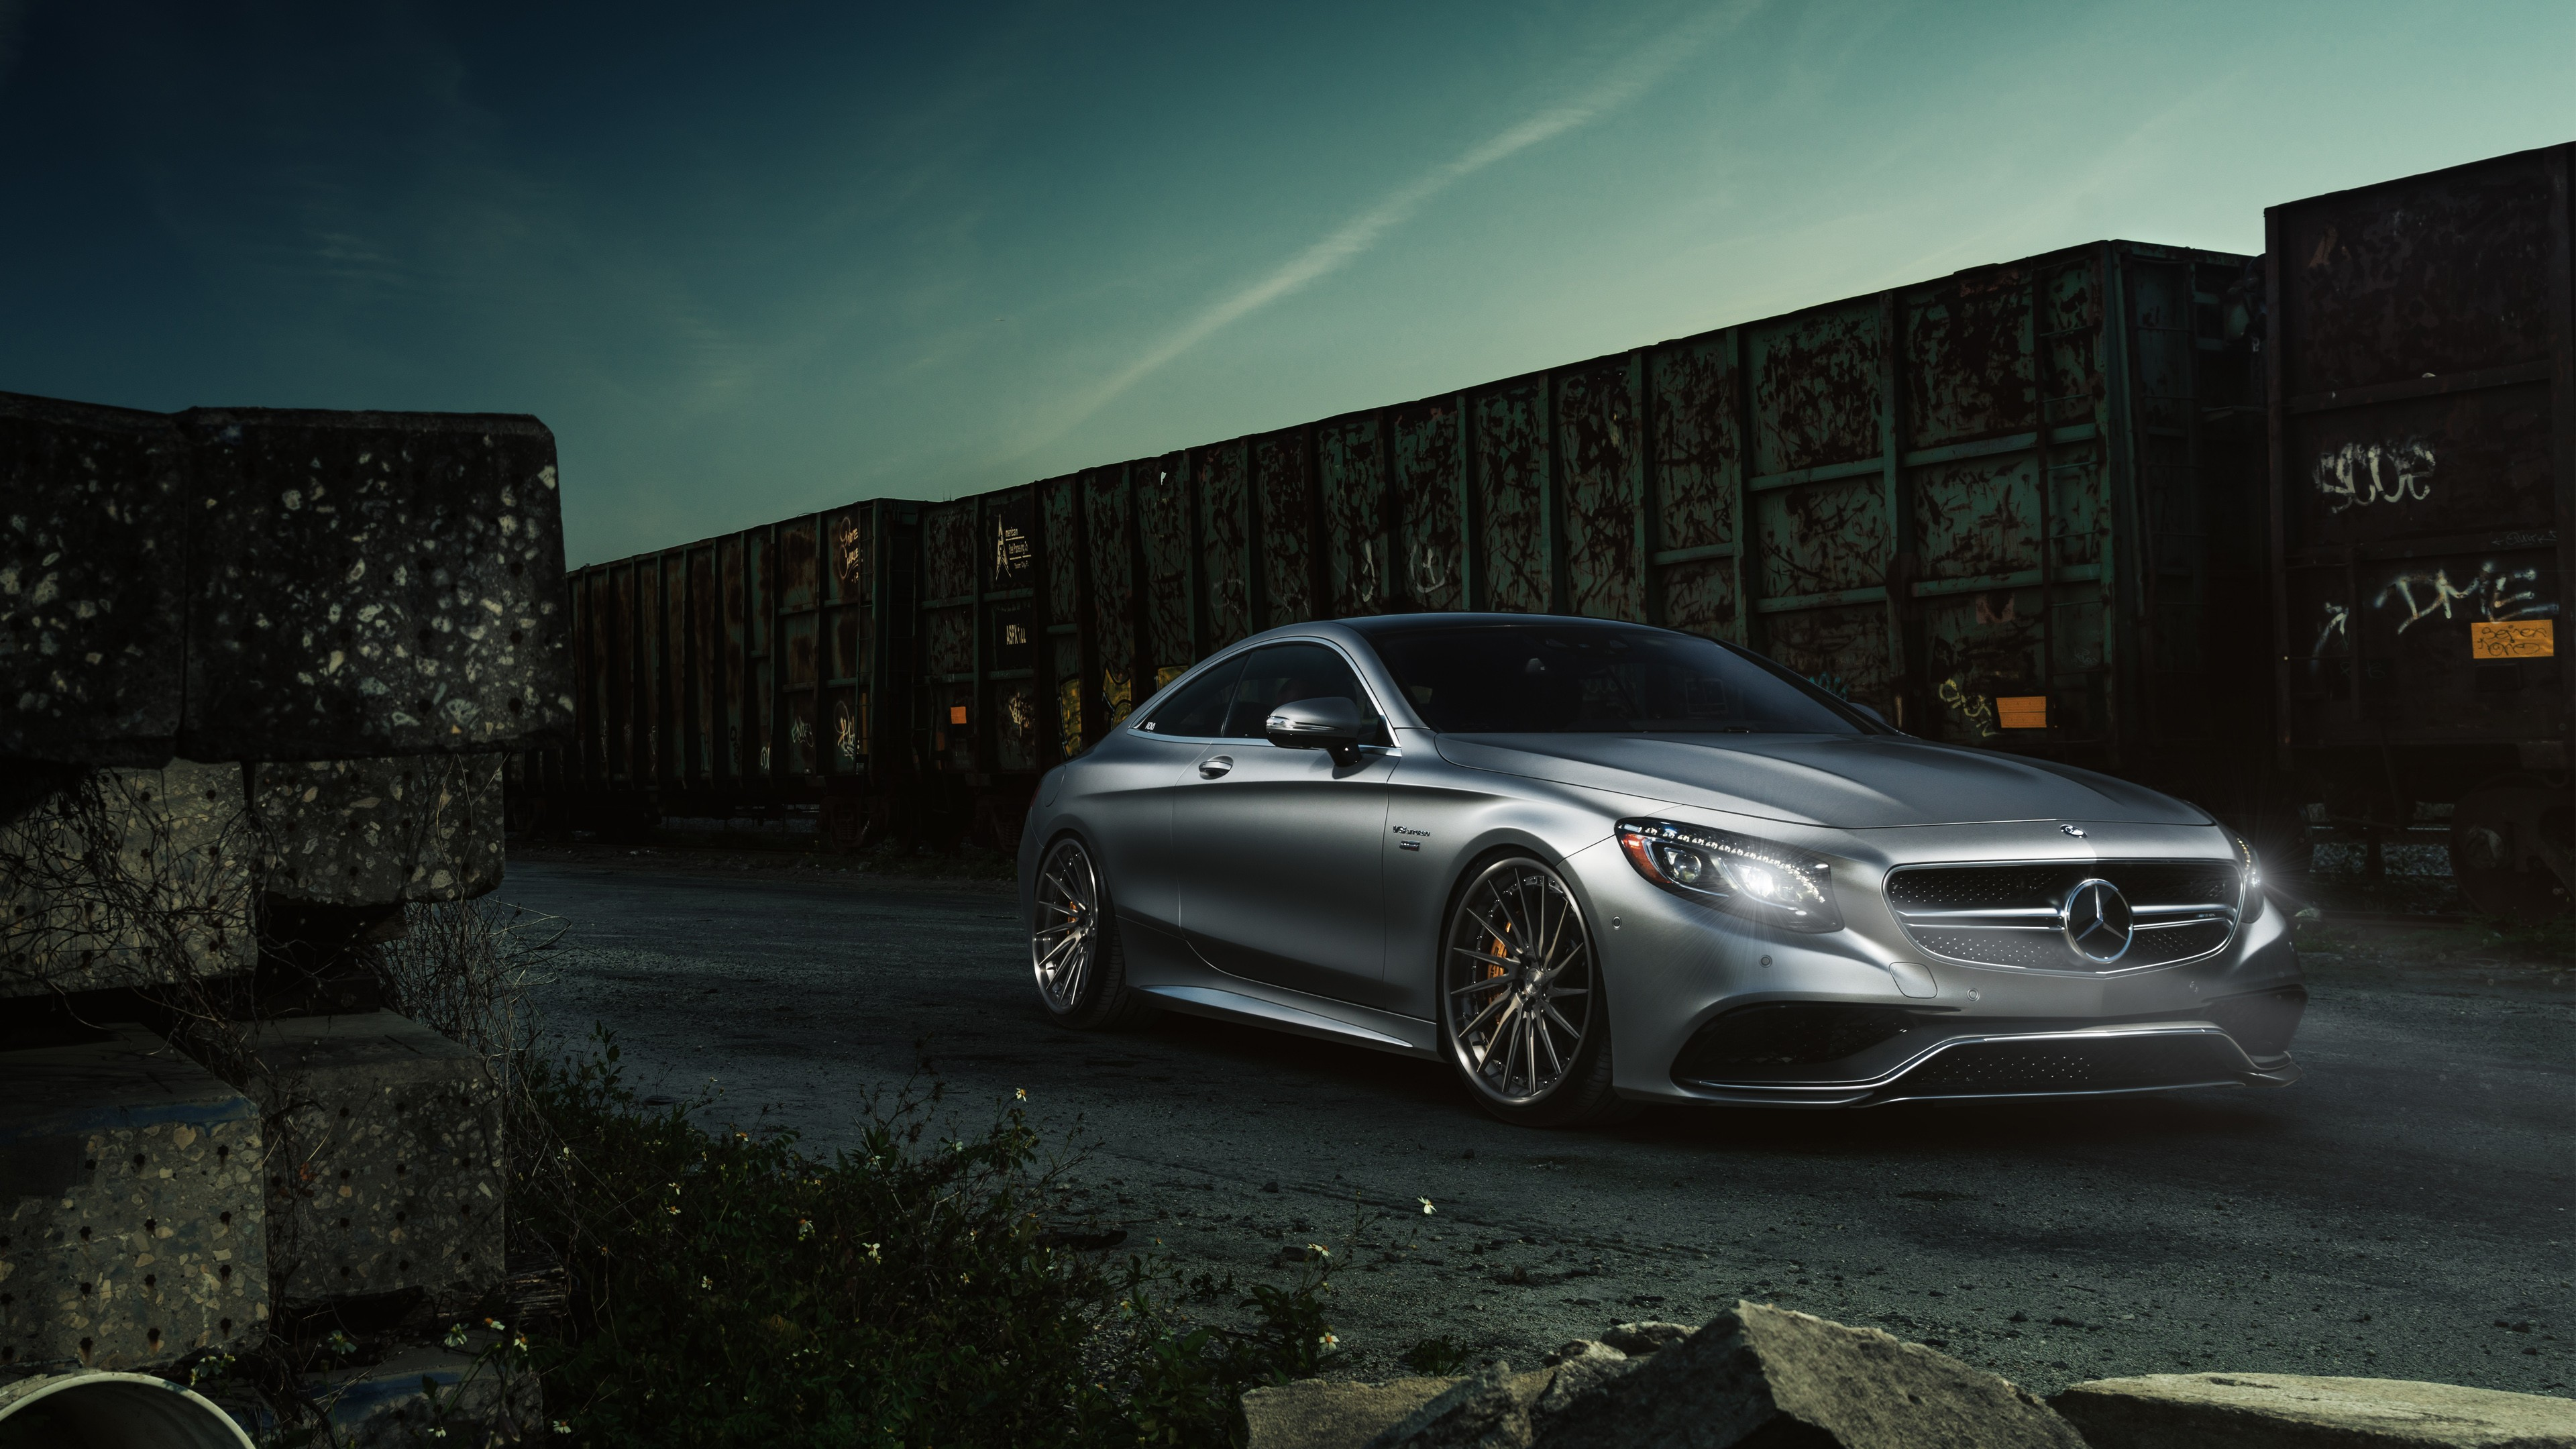 Mercedes Car Wallpapers For Windows 7 Mercedes Benz S63 Amg Luxury Sports Sedan Wallpapers Hd